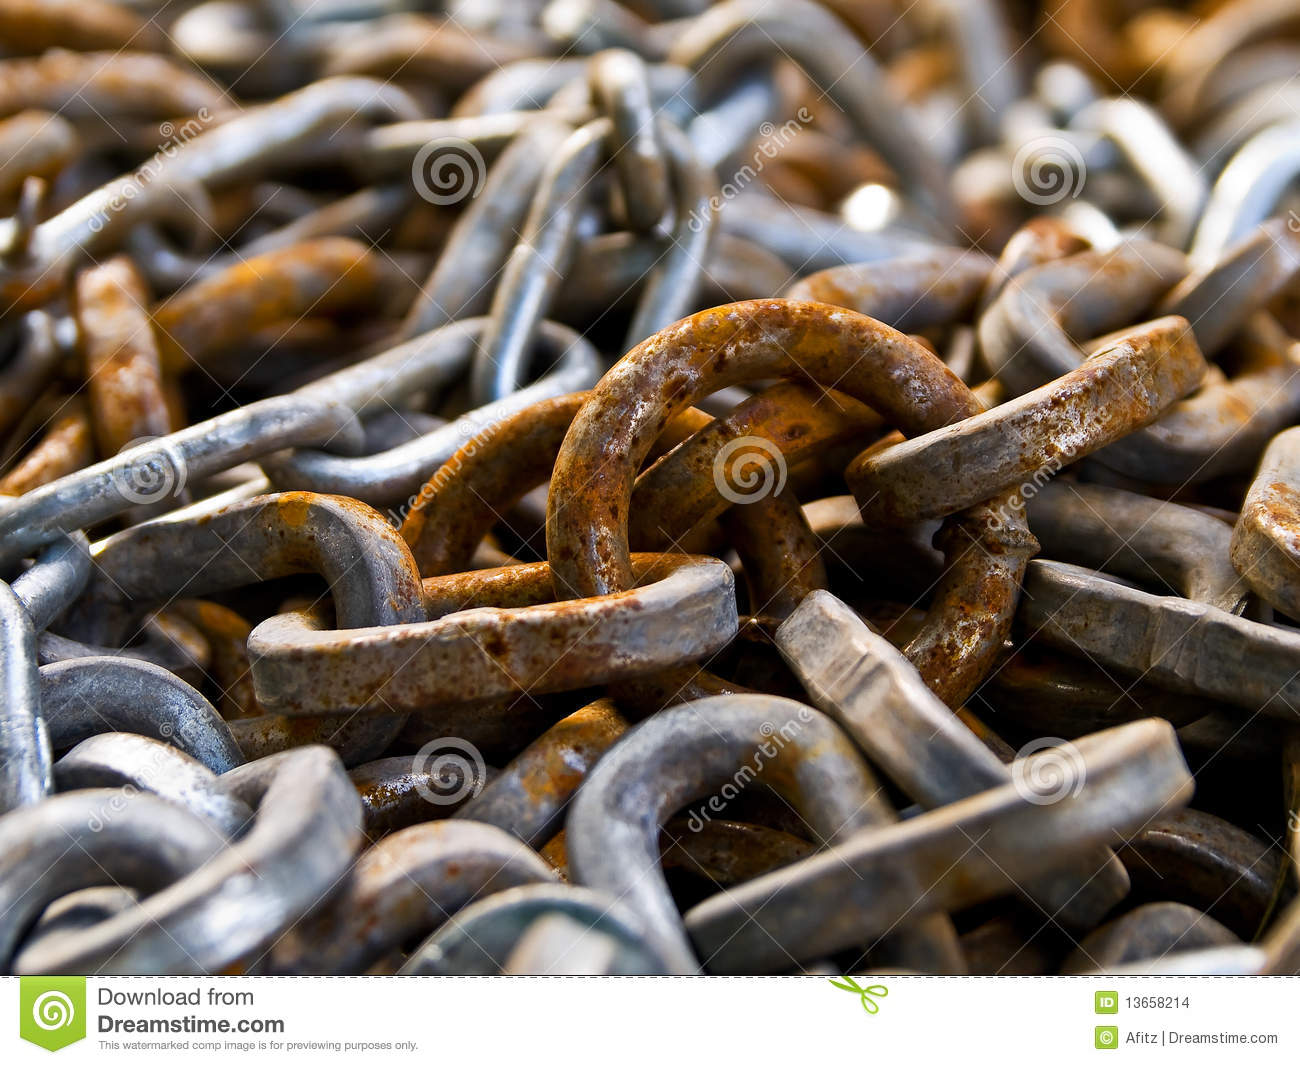 how to fix a rusty chain